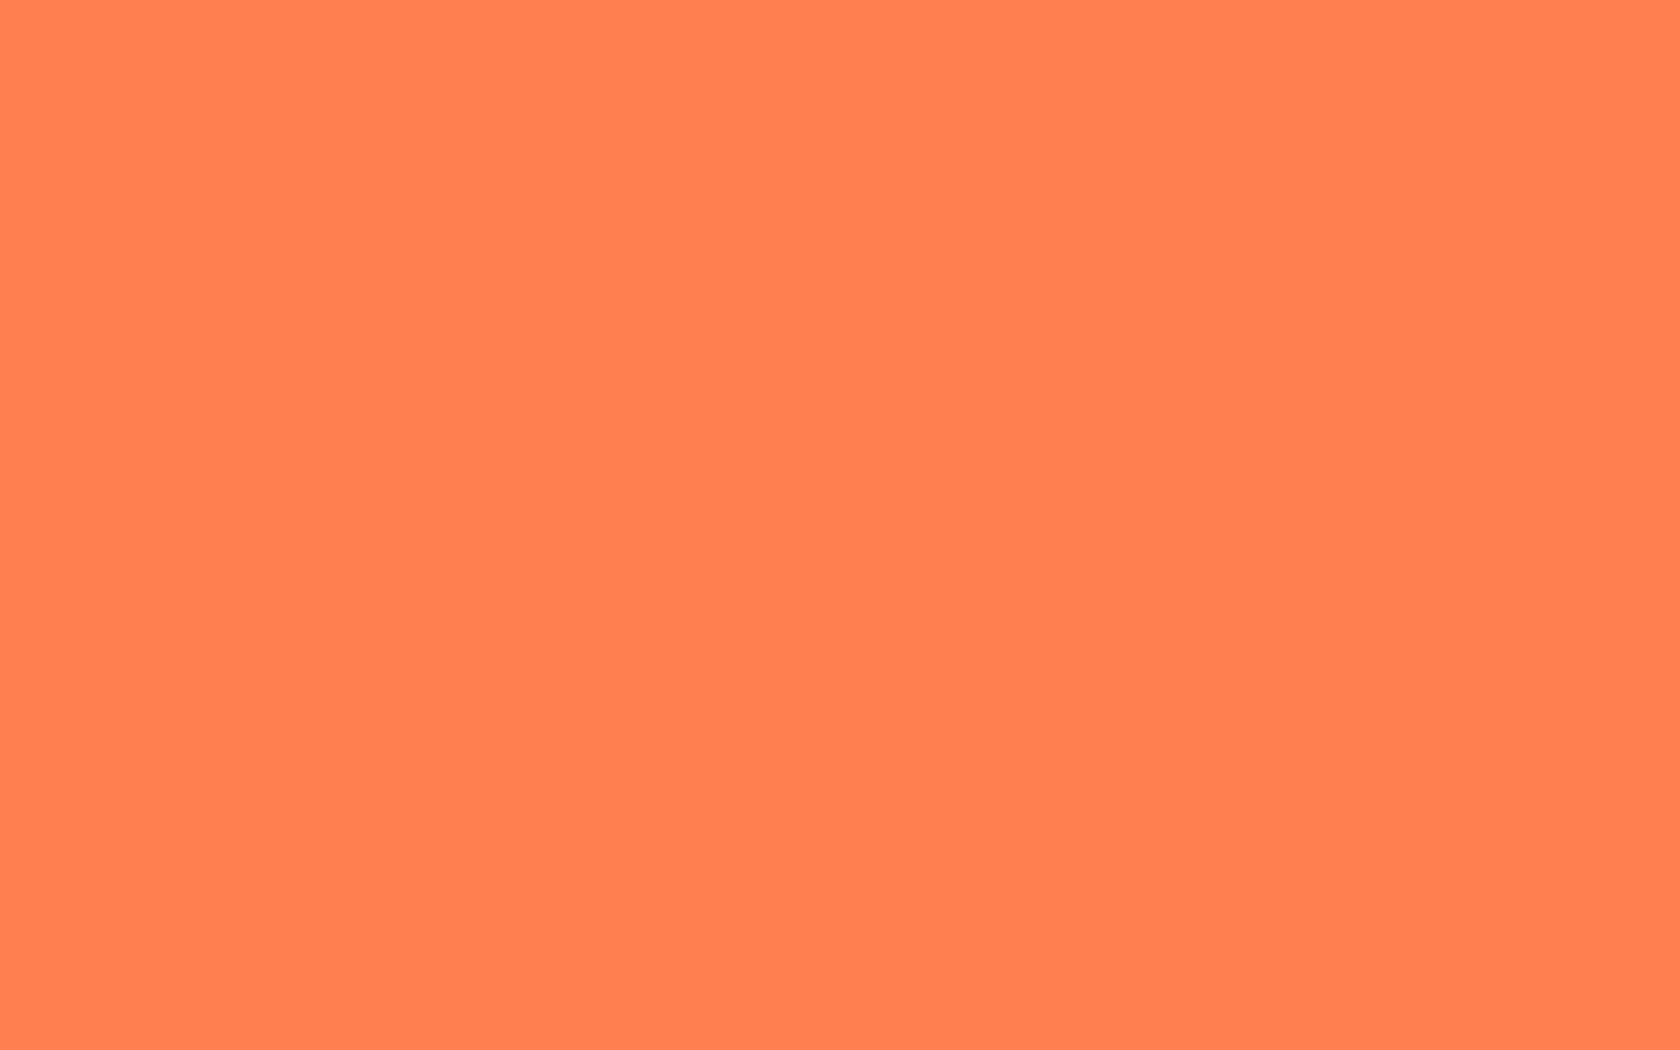 1680x1050 Coral Solid Color Background